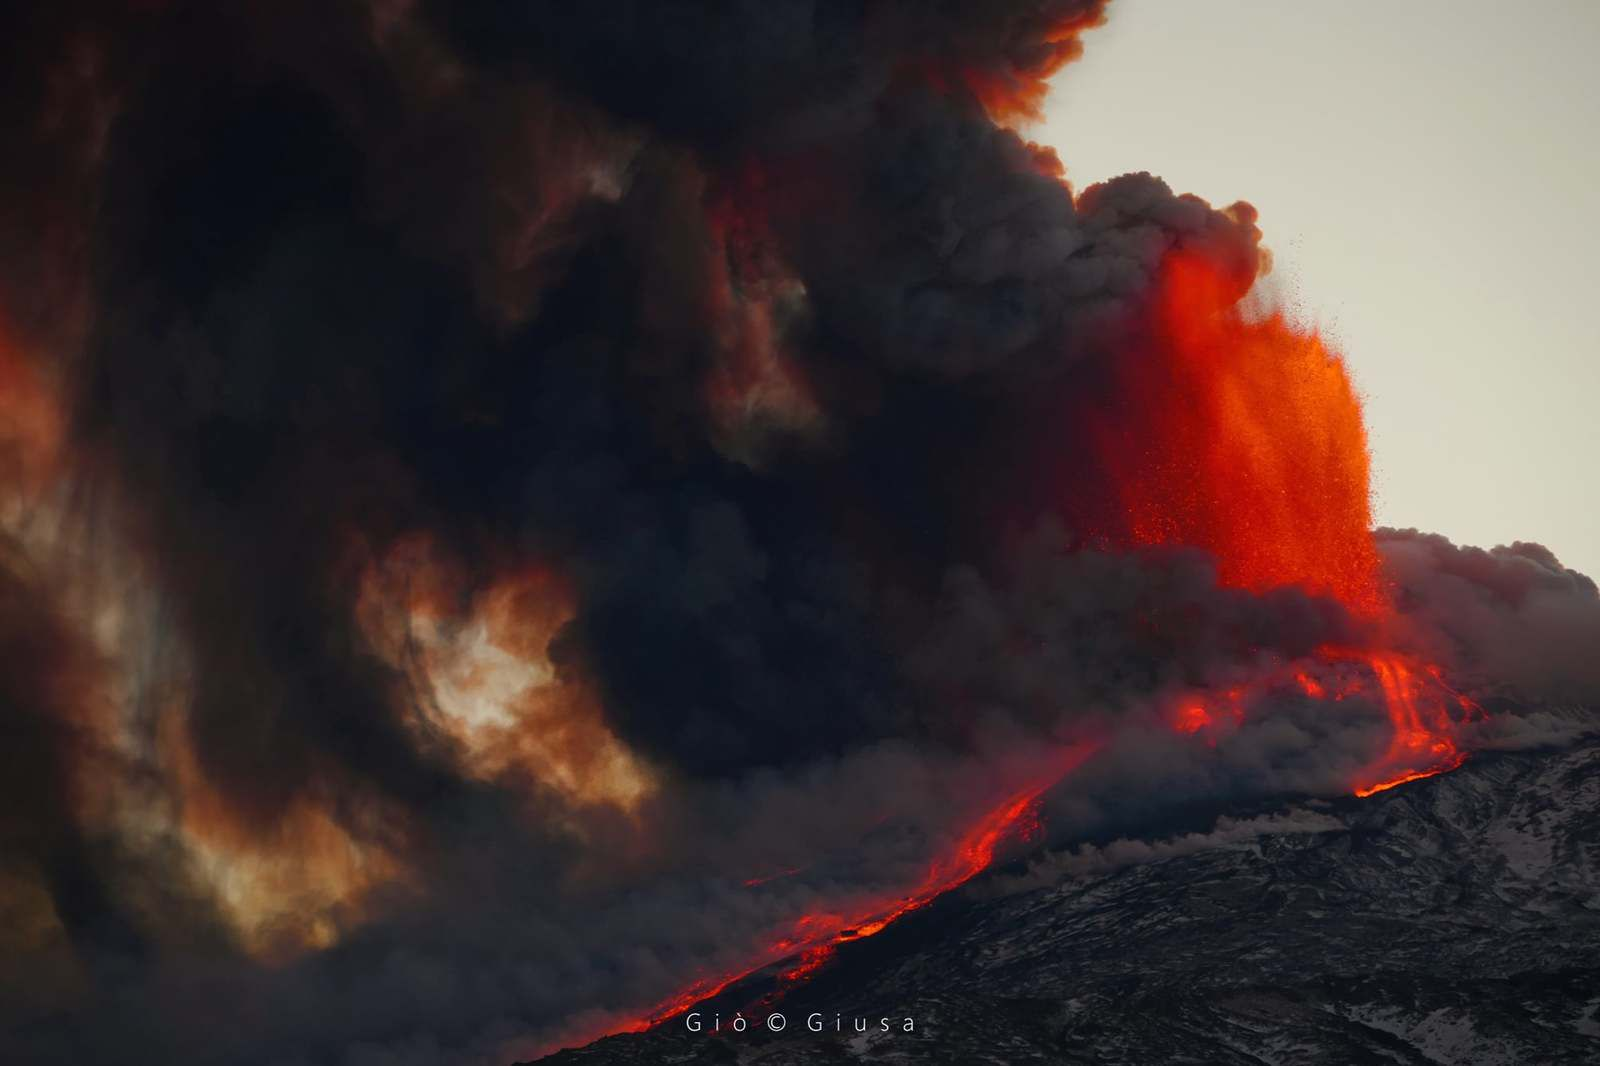 Etna SEC - lava fountain, flow towards the Valle del Bove and loaded plume - photo 02.16.2021 Gio Giusa